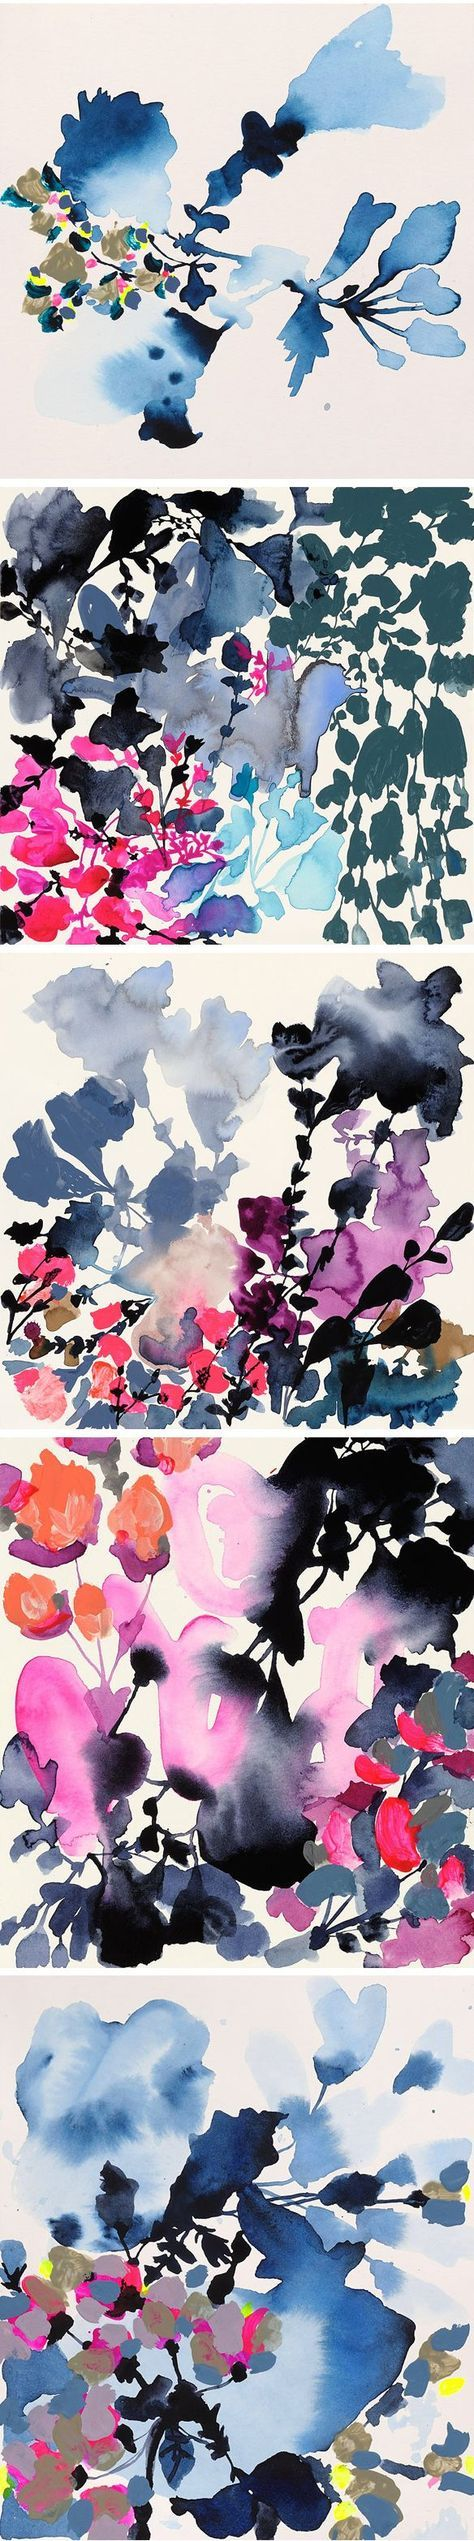 29+ Ideas Painting Ideas Watercolor Watercolour Mobiles For 2019